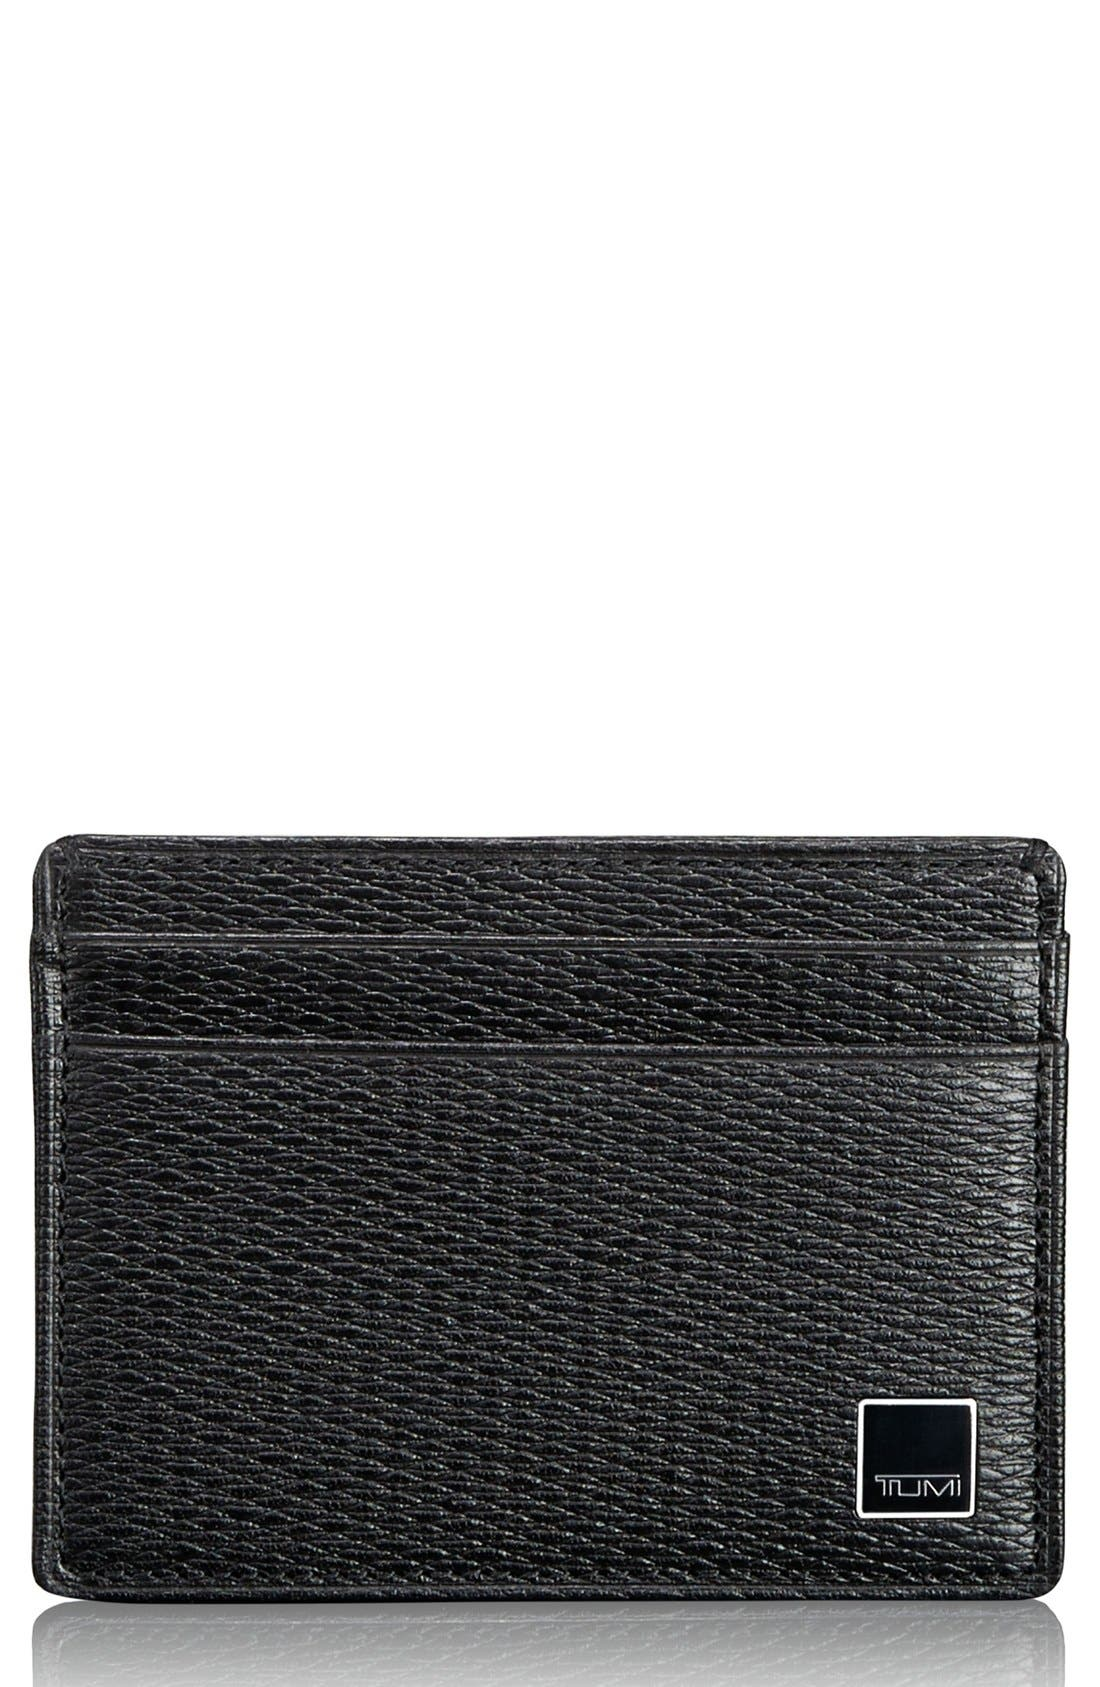 Main Image - Tumi 'Monaco' Slim Card Case